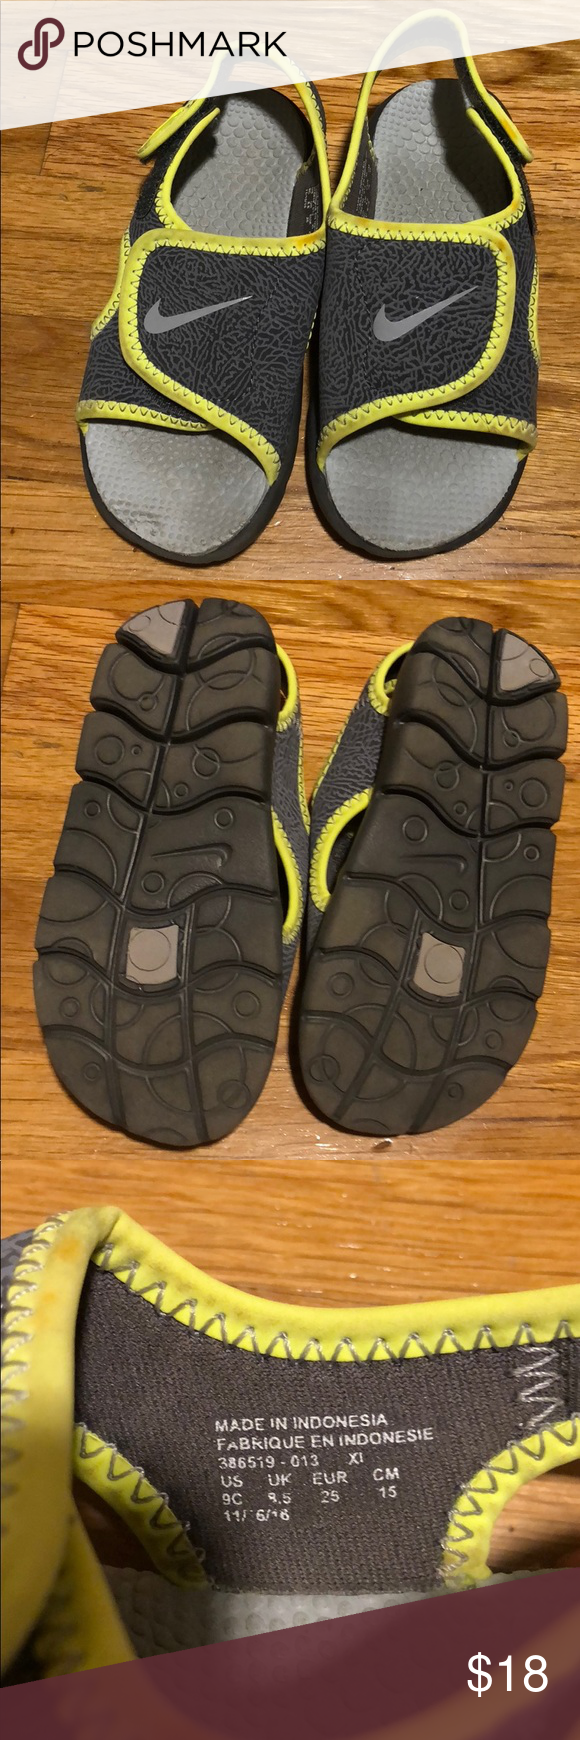 744483425ed3d7 Boys toddler Nike sandals size 9 Good condition Nike Shoes Sandals   Flip  Flops